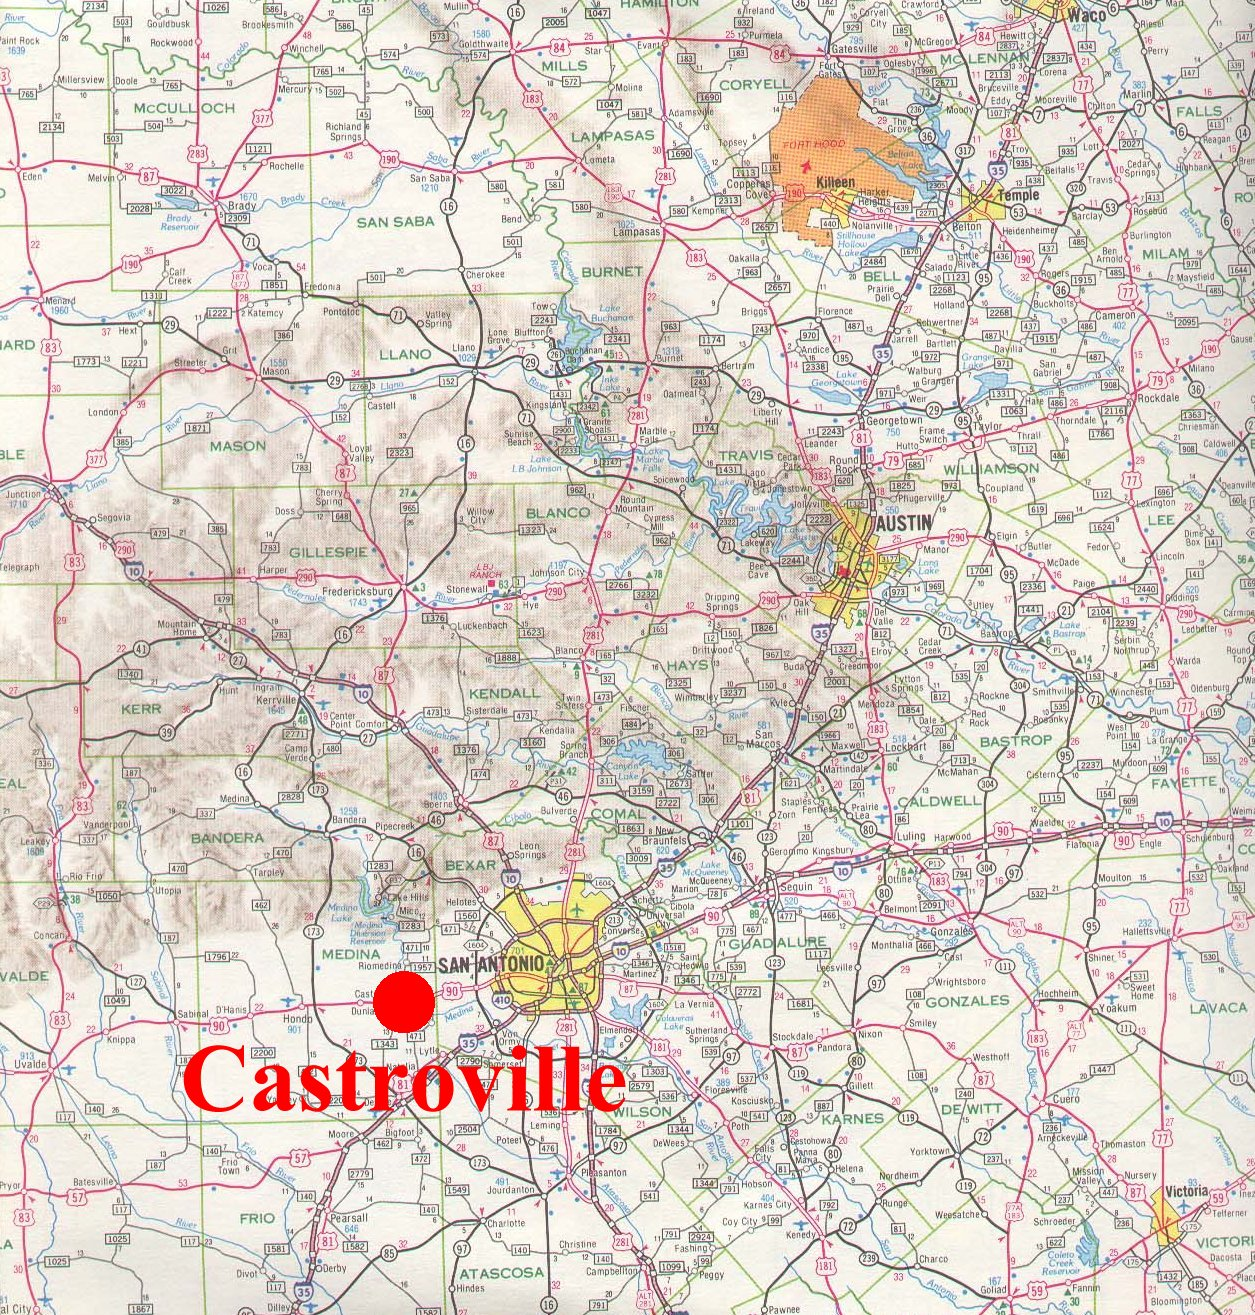 single men in castroville Palo alto college san castroville was the first settlement between san , castro was to bring 600 families or single men to colonize the area within.